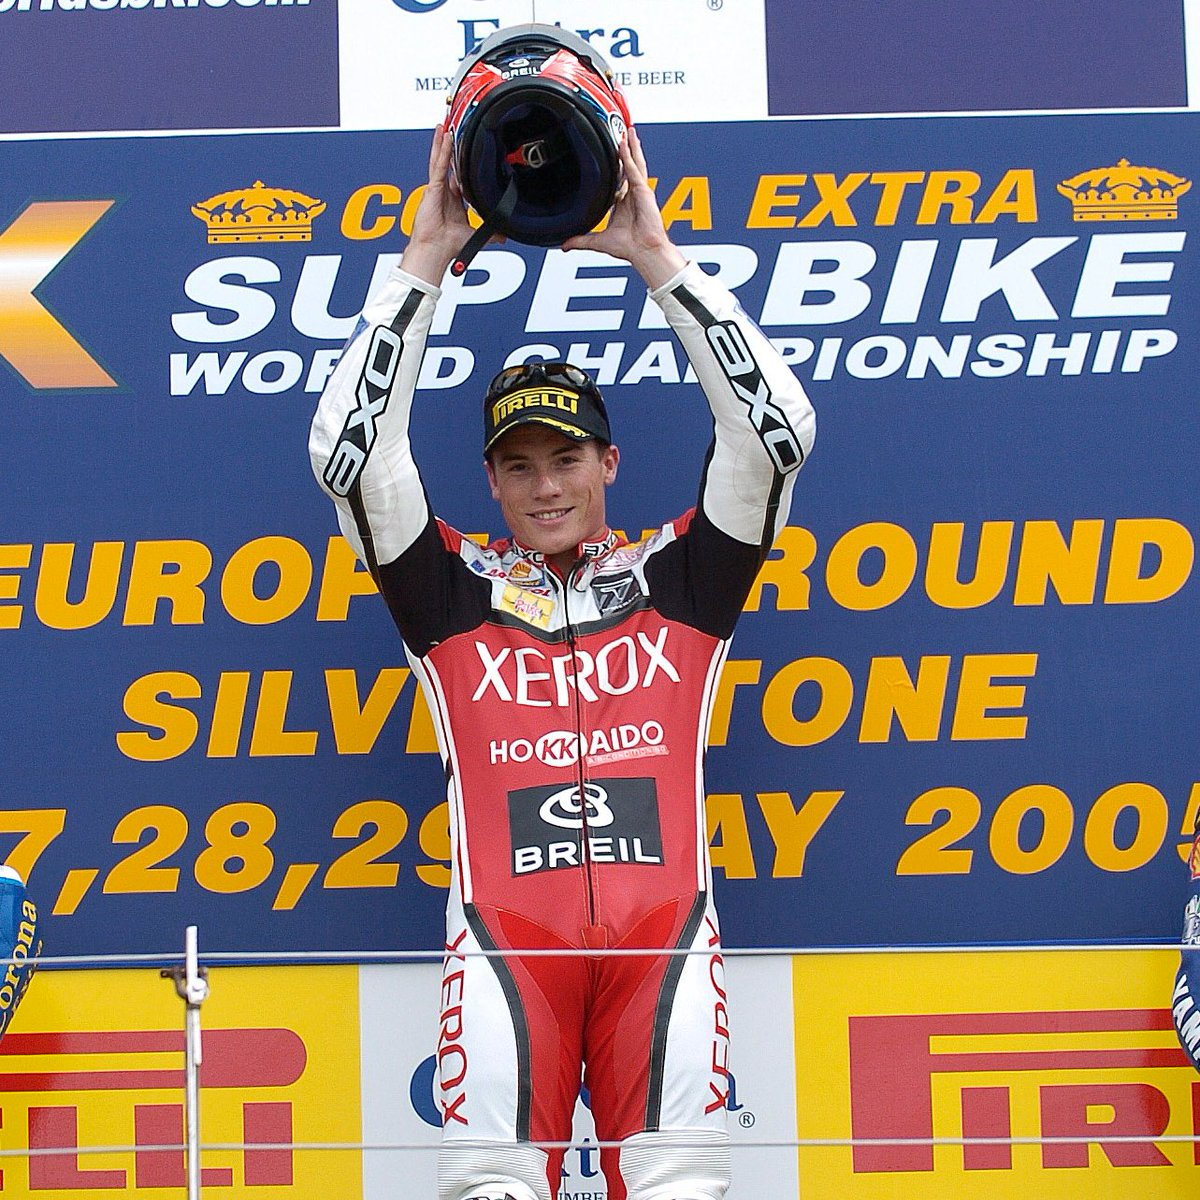 test Twitter Media - Toseland the defender, Toseland the crowd pleaser💪🏻  #Onthisday at Silverstone in 2005, James Toseland took the first win of the season as defending Champion in front of a huge, passionate, home British crowd!  #GBRWorldSBK🇬🇧 https://t.co/d2rp9iCe54